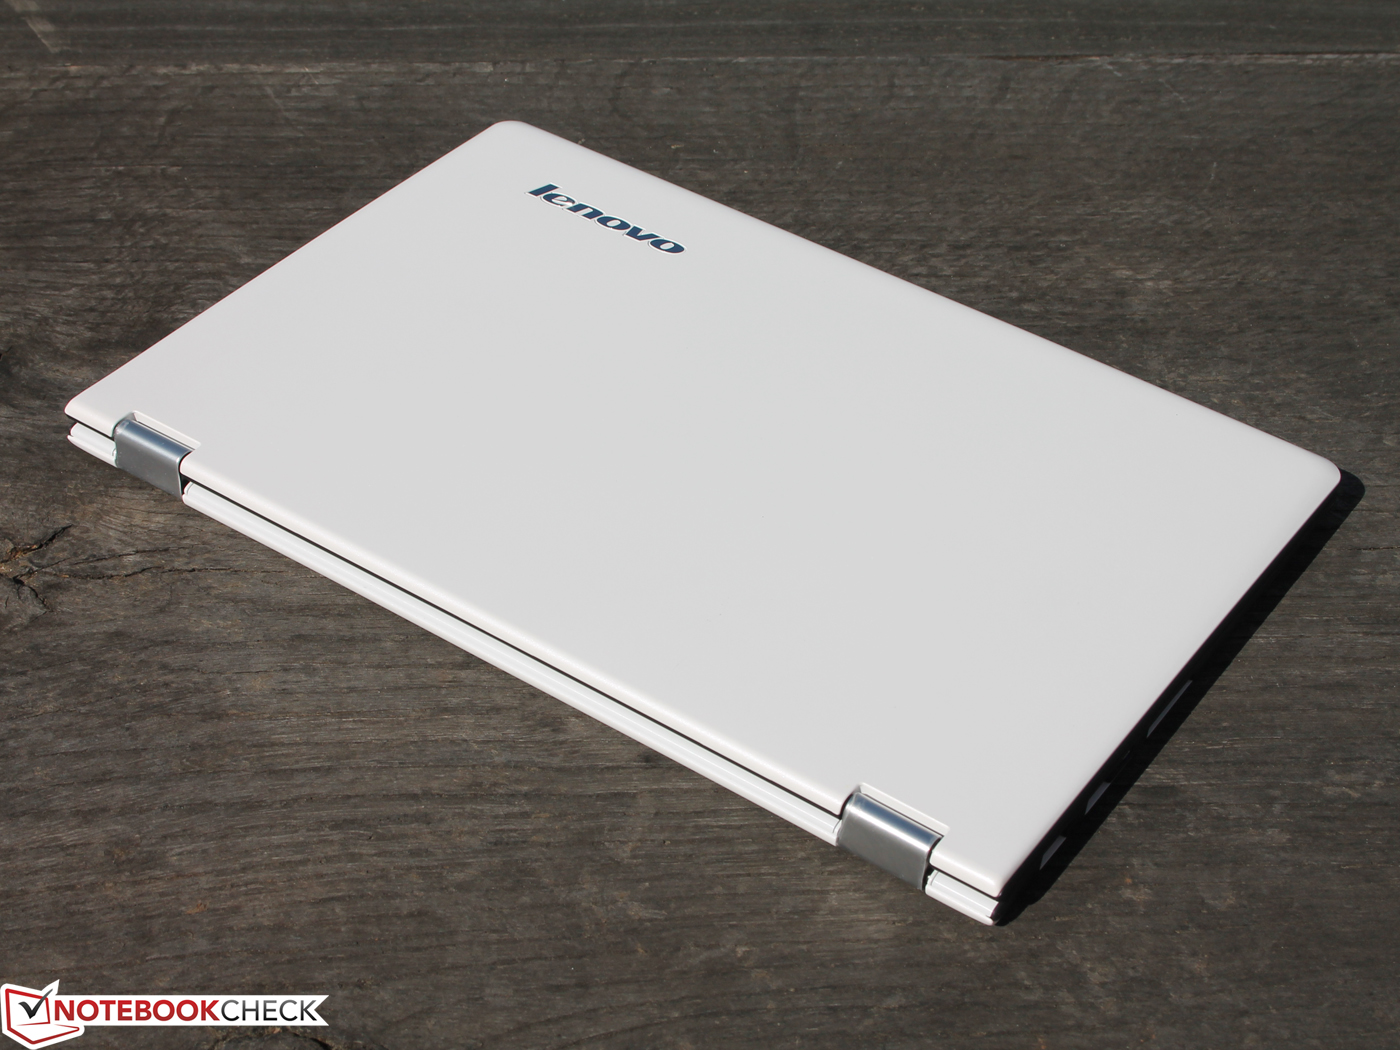 Lenovo Yoga 3 11 Convertible Review - NotebookCheck net Reviews